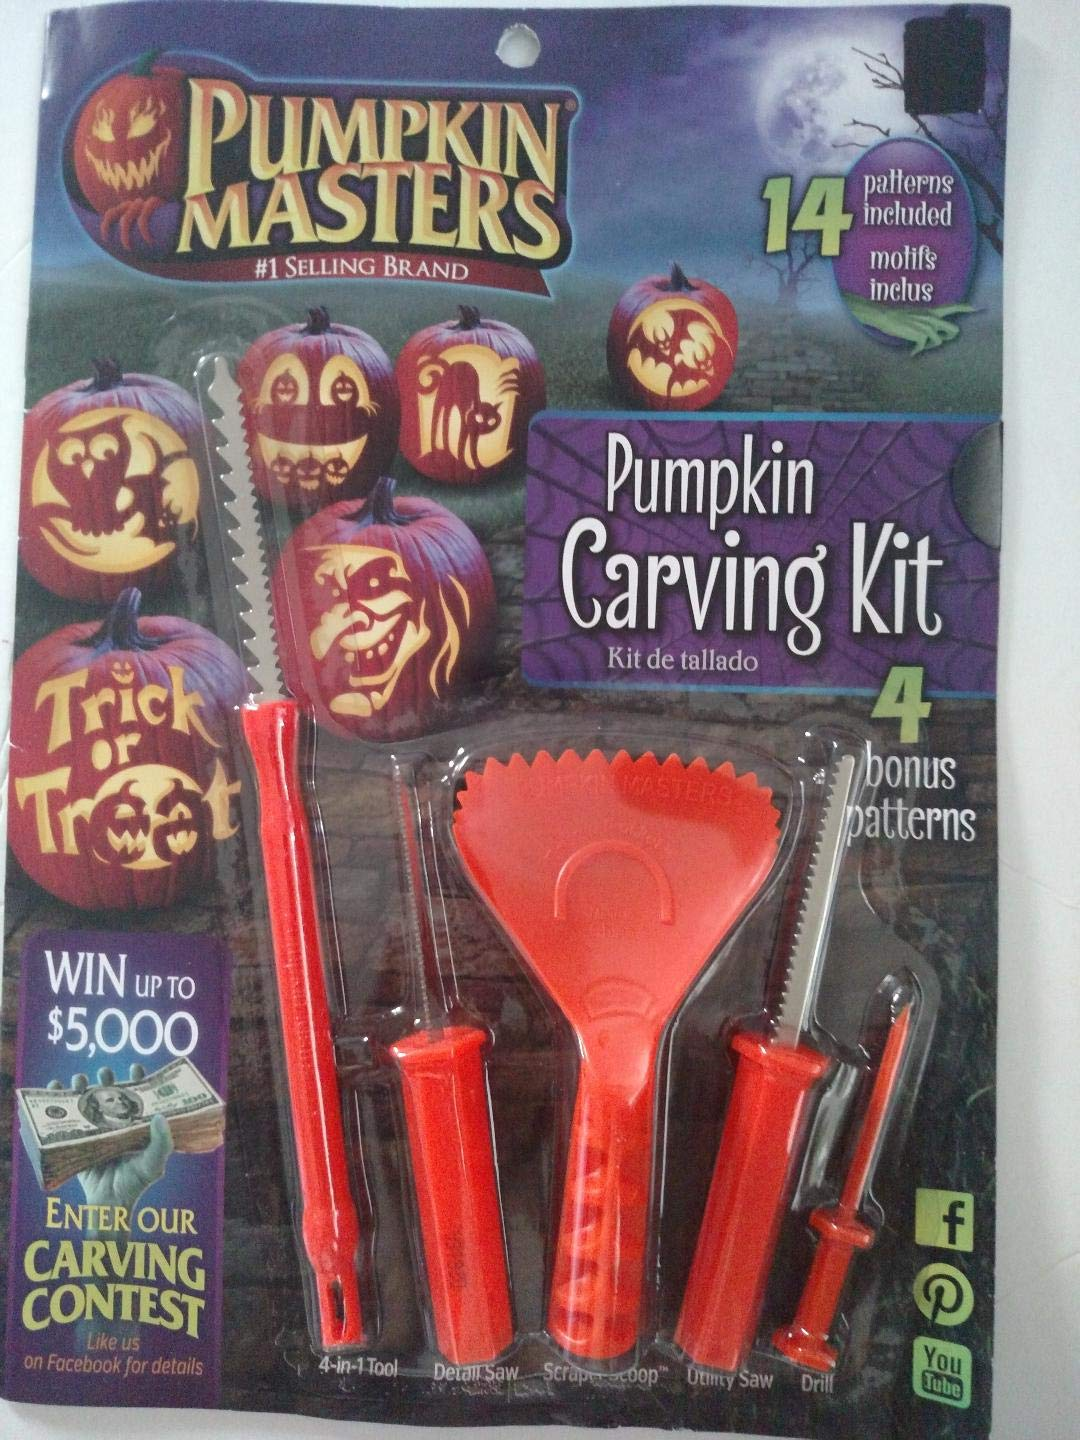 Pumpkin Masters America's Favorite 19 Piece Pumpkin Carving Kit with 14 Patterns and 5 Tools